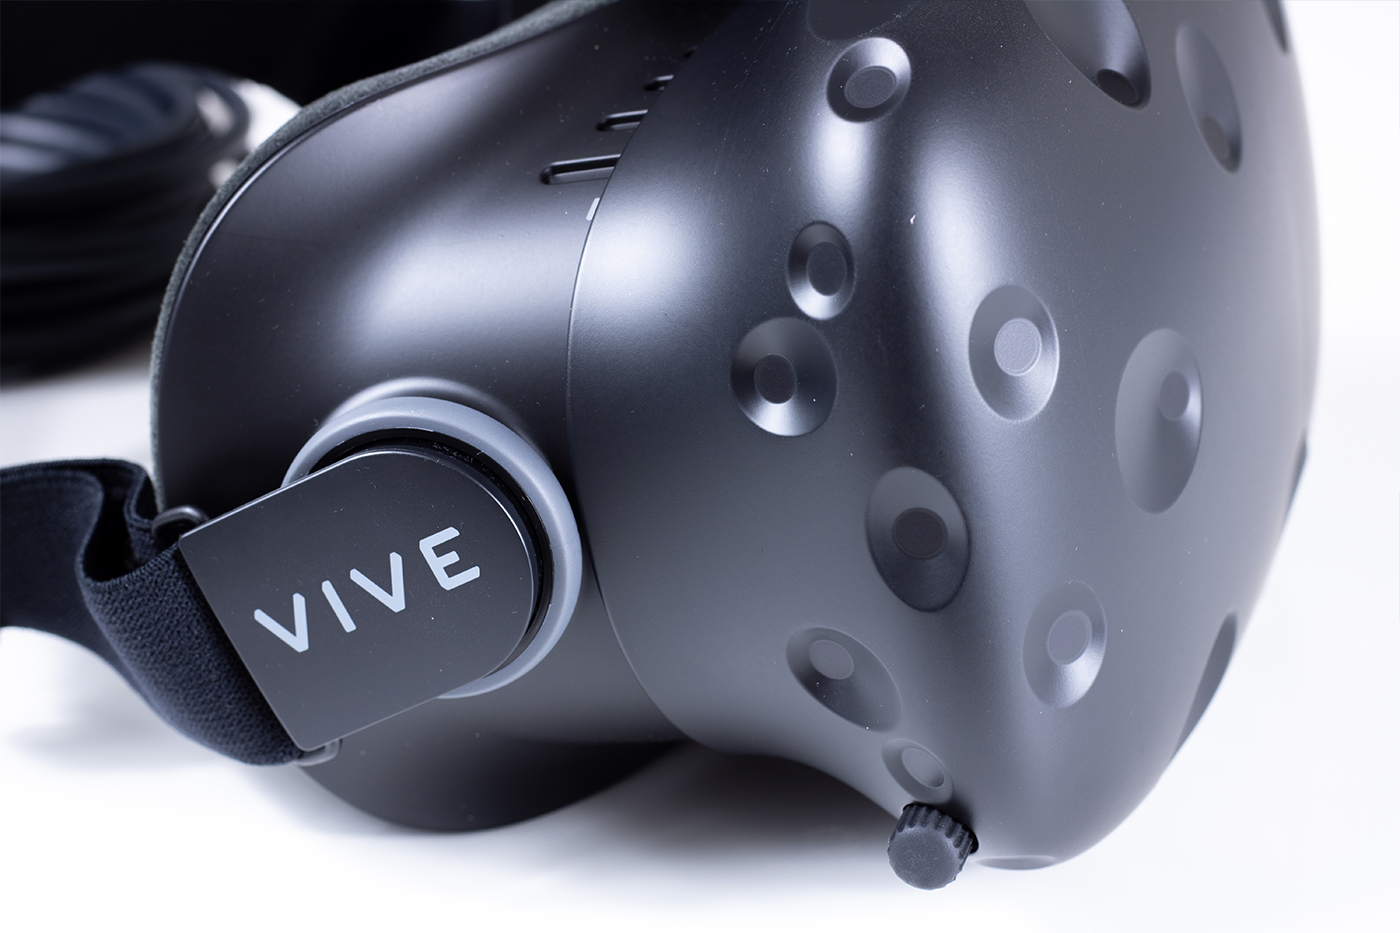 HTC Vive Headset Side View